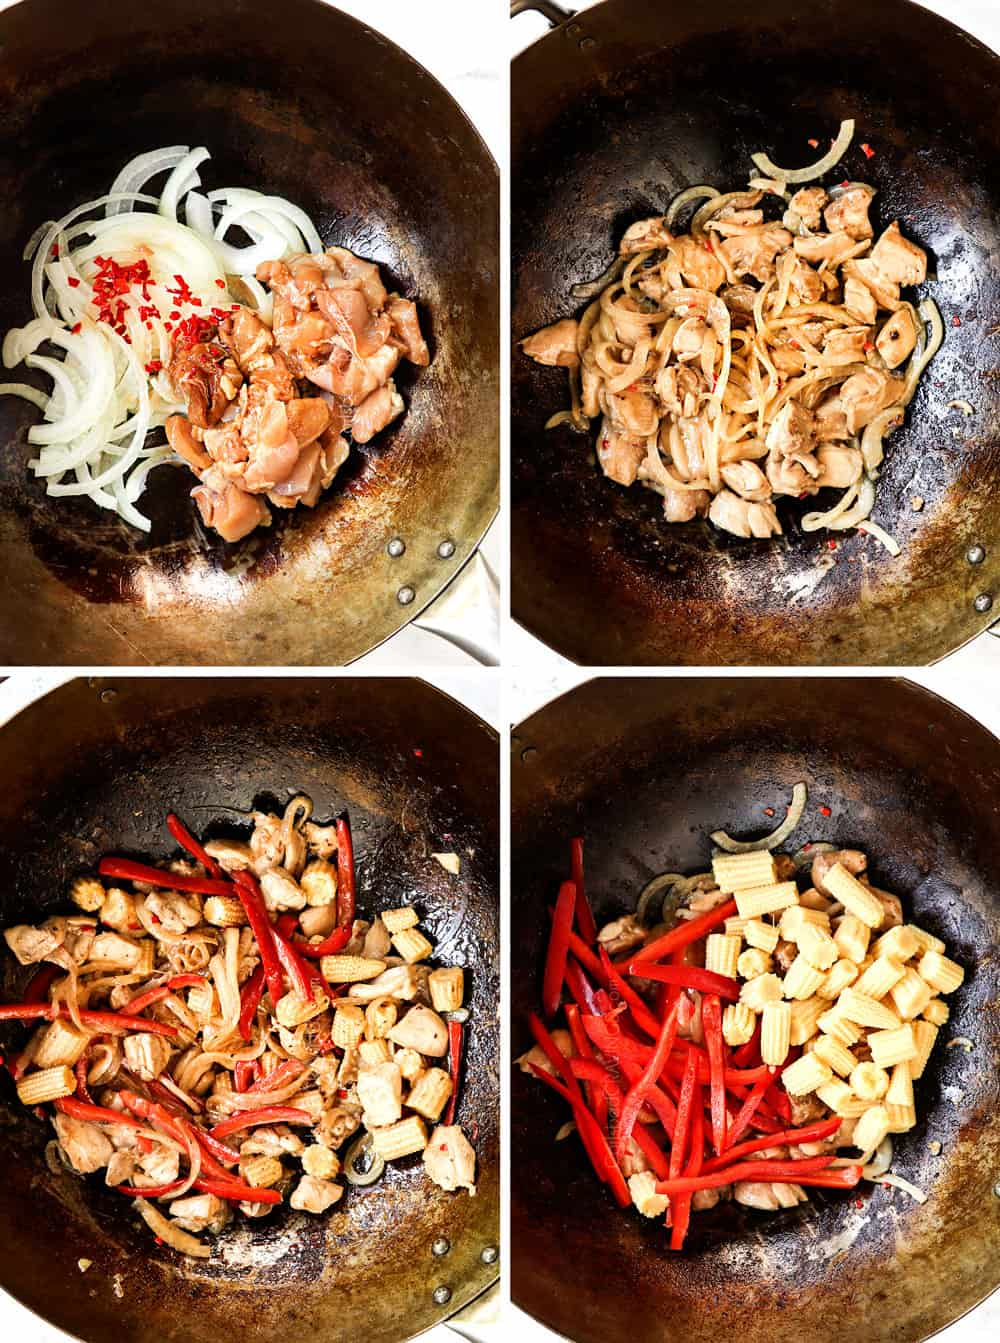 a collage showing how to make Thai Drunken Noodles (Pad Kee Mao) recipe by adding chicken onions and Thai chilies to a wok and stir frying, then adding bell peppers and corn to the wok and stir frying